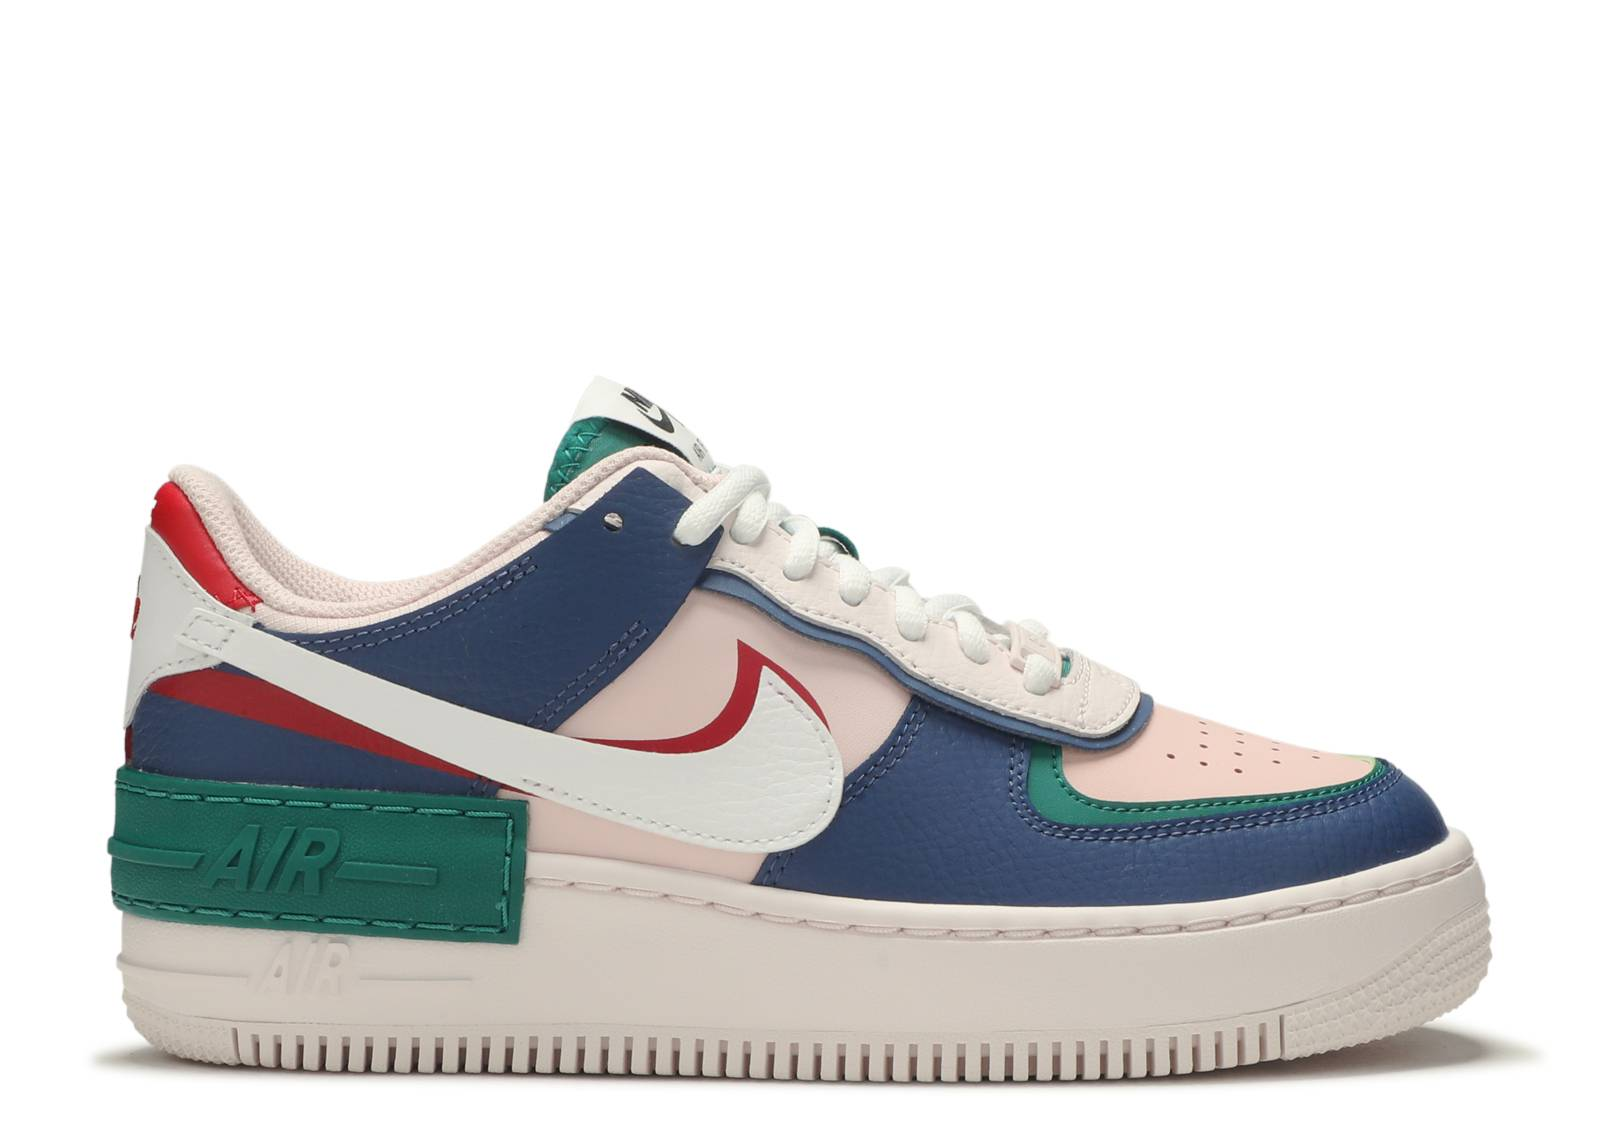 w's Air Force 1 Low